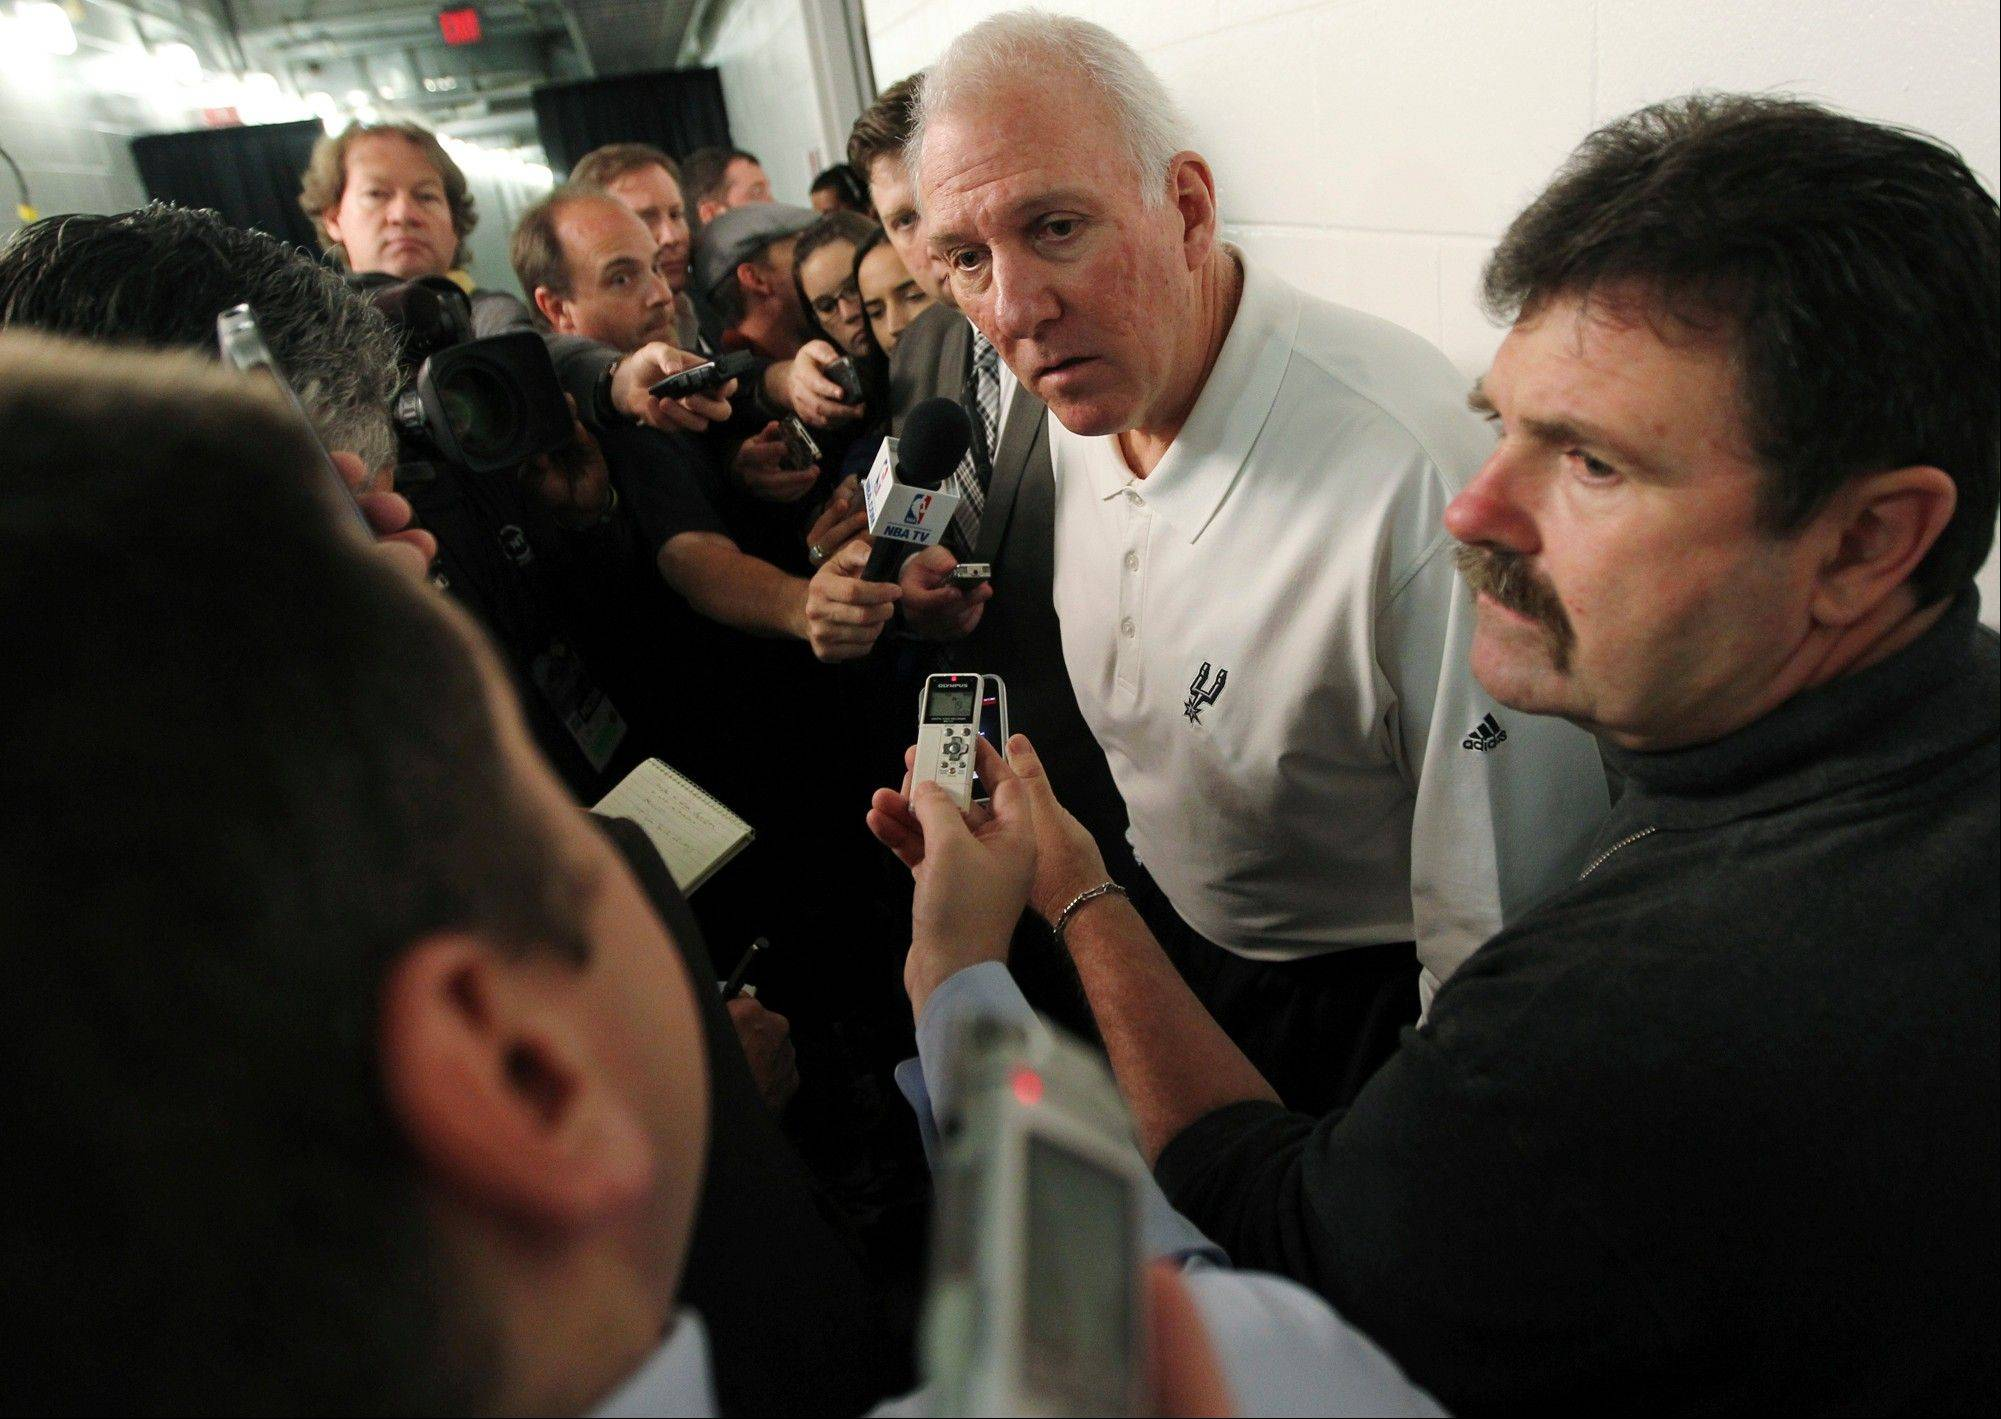 San Antonio Spurs head coach Gregg Popovich speaks to reporters Thrusday before the game against the Miami Heat in Miami. Commissioner David Stern said the Spurs will be punished by the league for their decision to send Tim Duncan, Tony Parker, Manu Ginobili and Danny Green home and not make them available to play against the Heat.